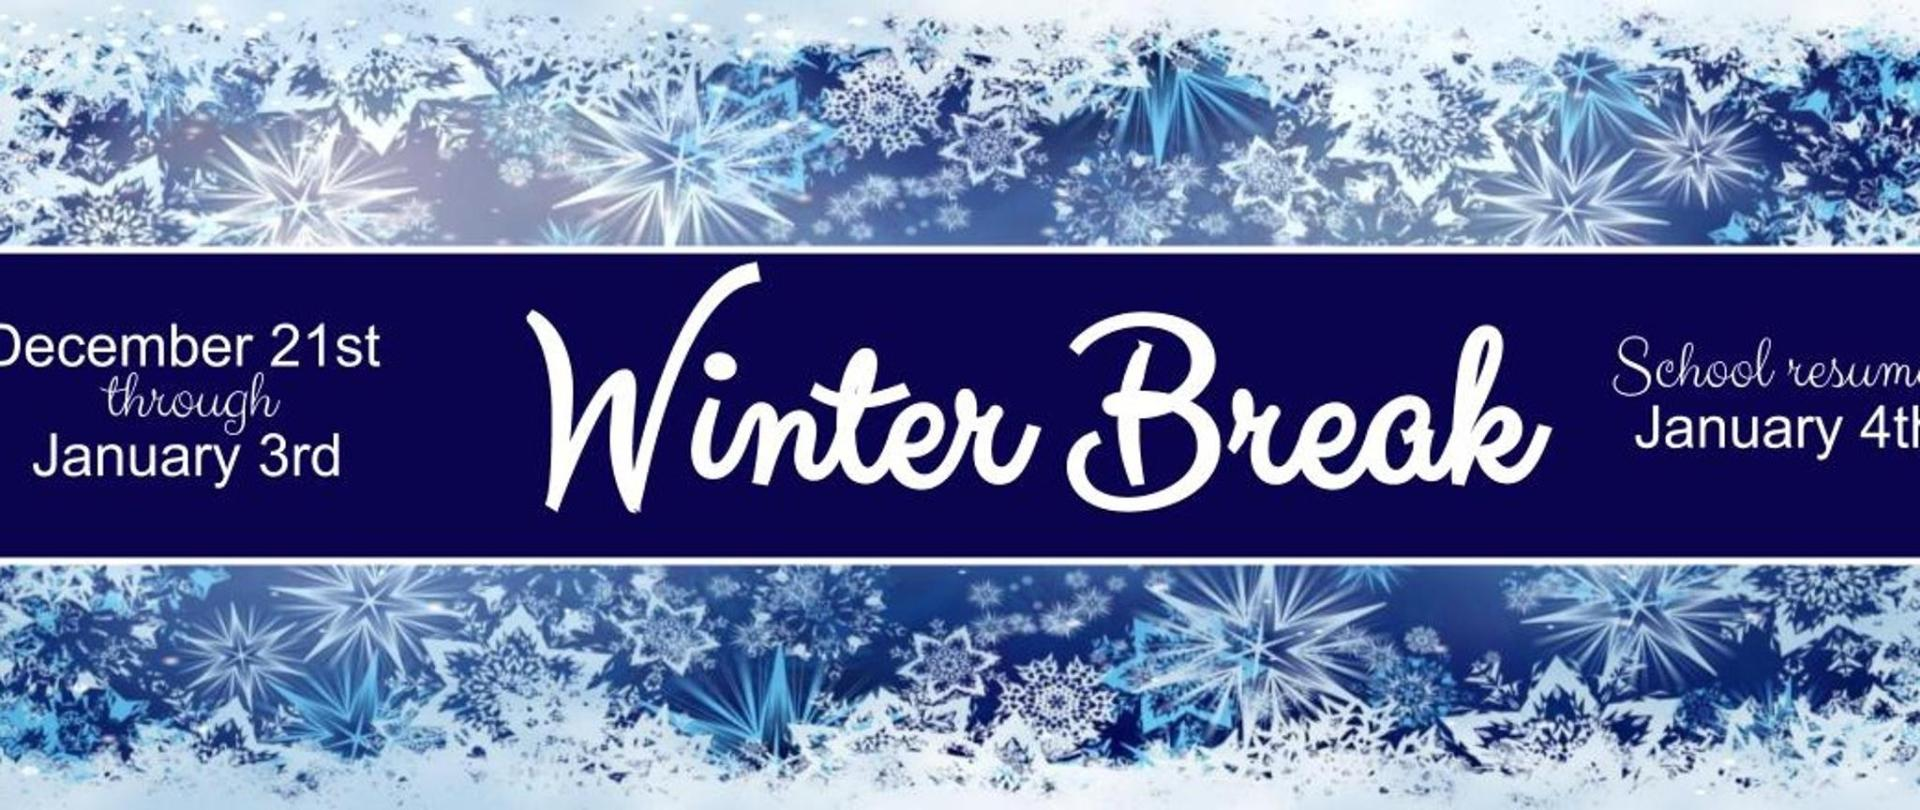 Winter-Break-Banner-2017-18-2-1.jpg mmmmm.jpg